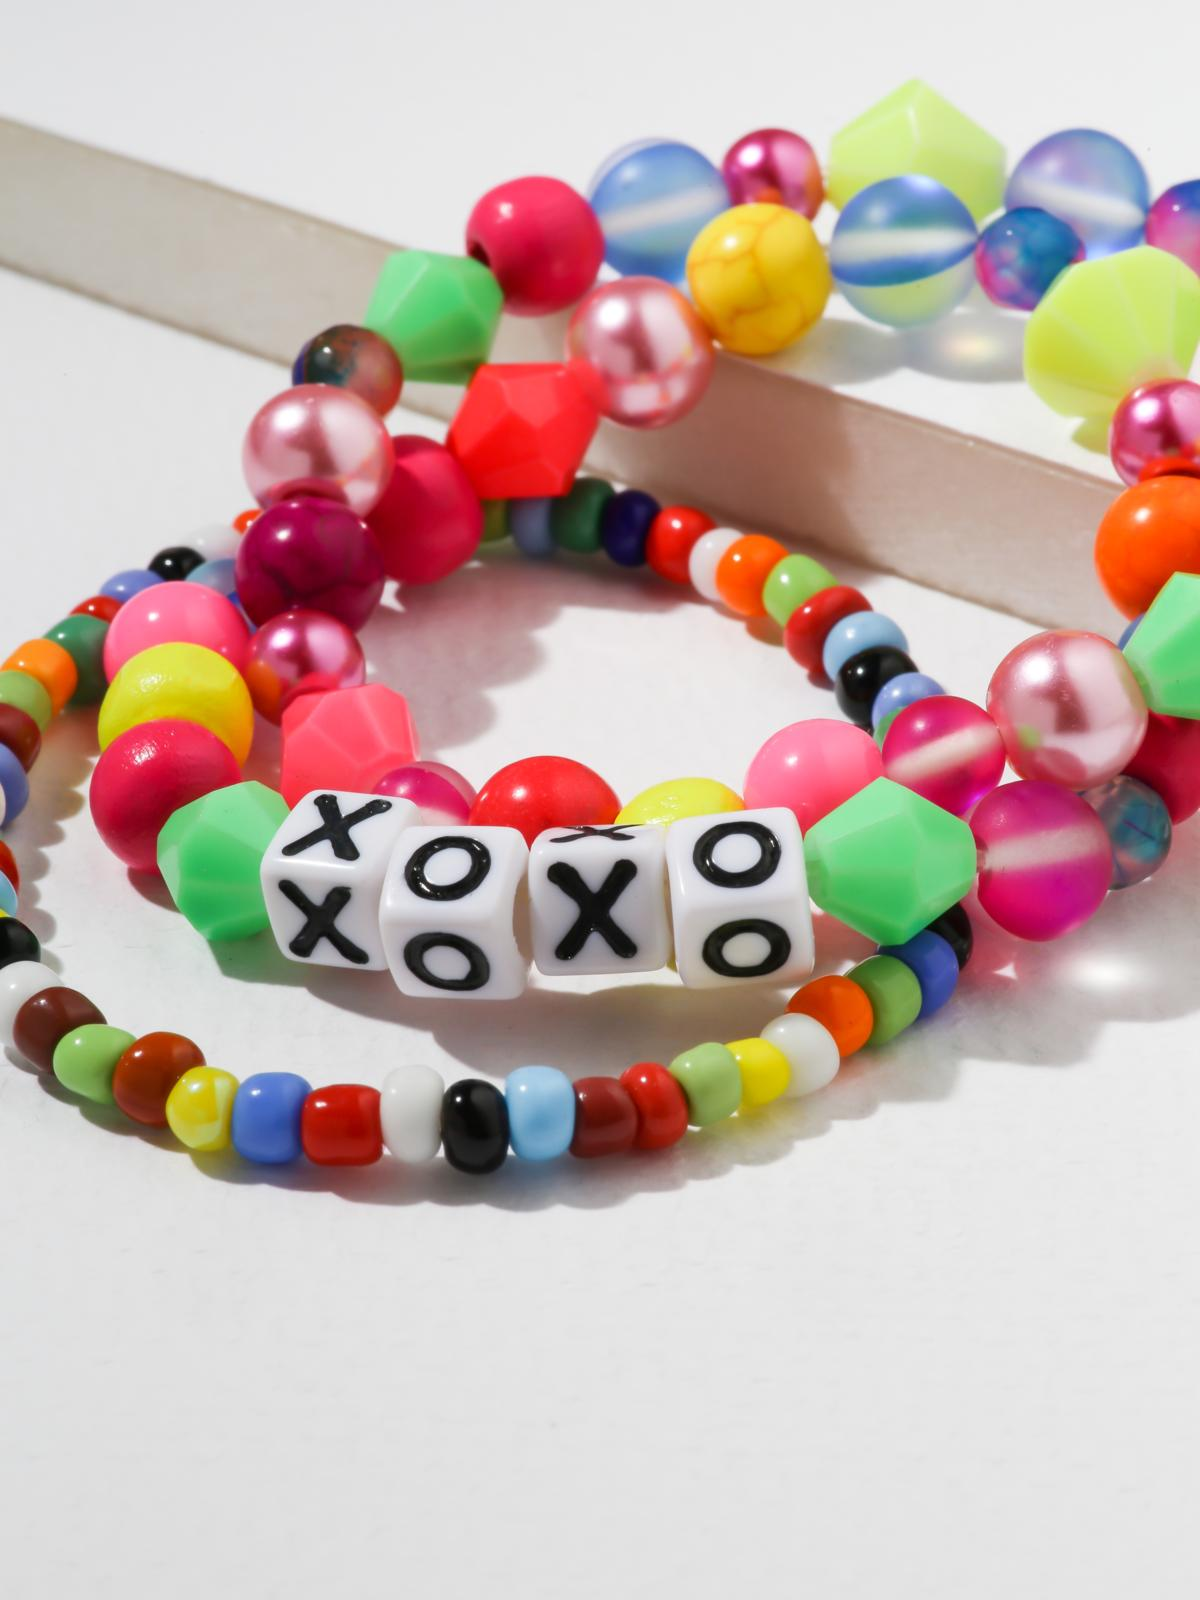 The XOXO Bracelet Set